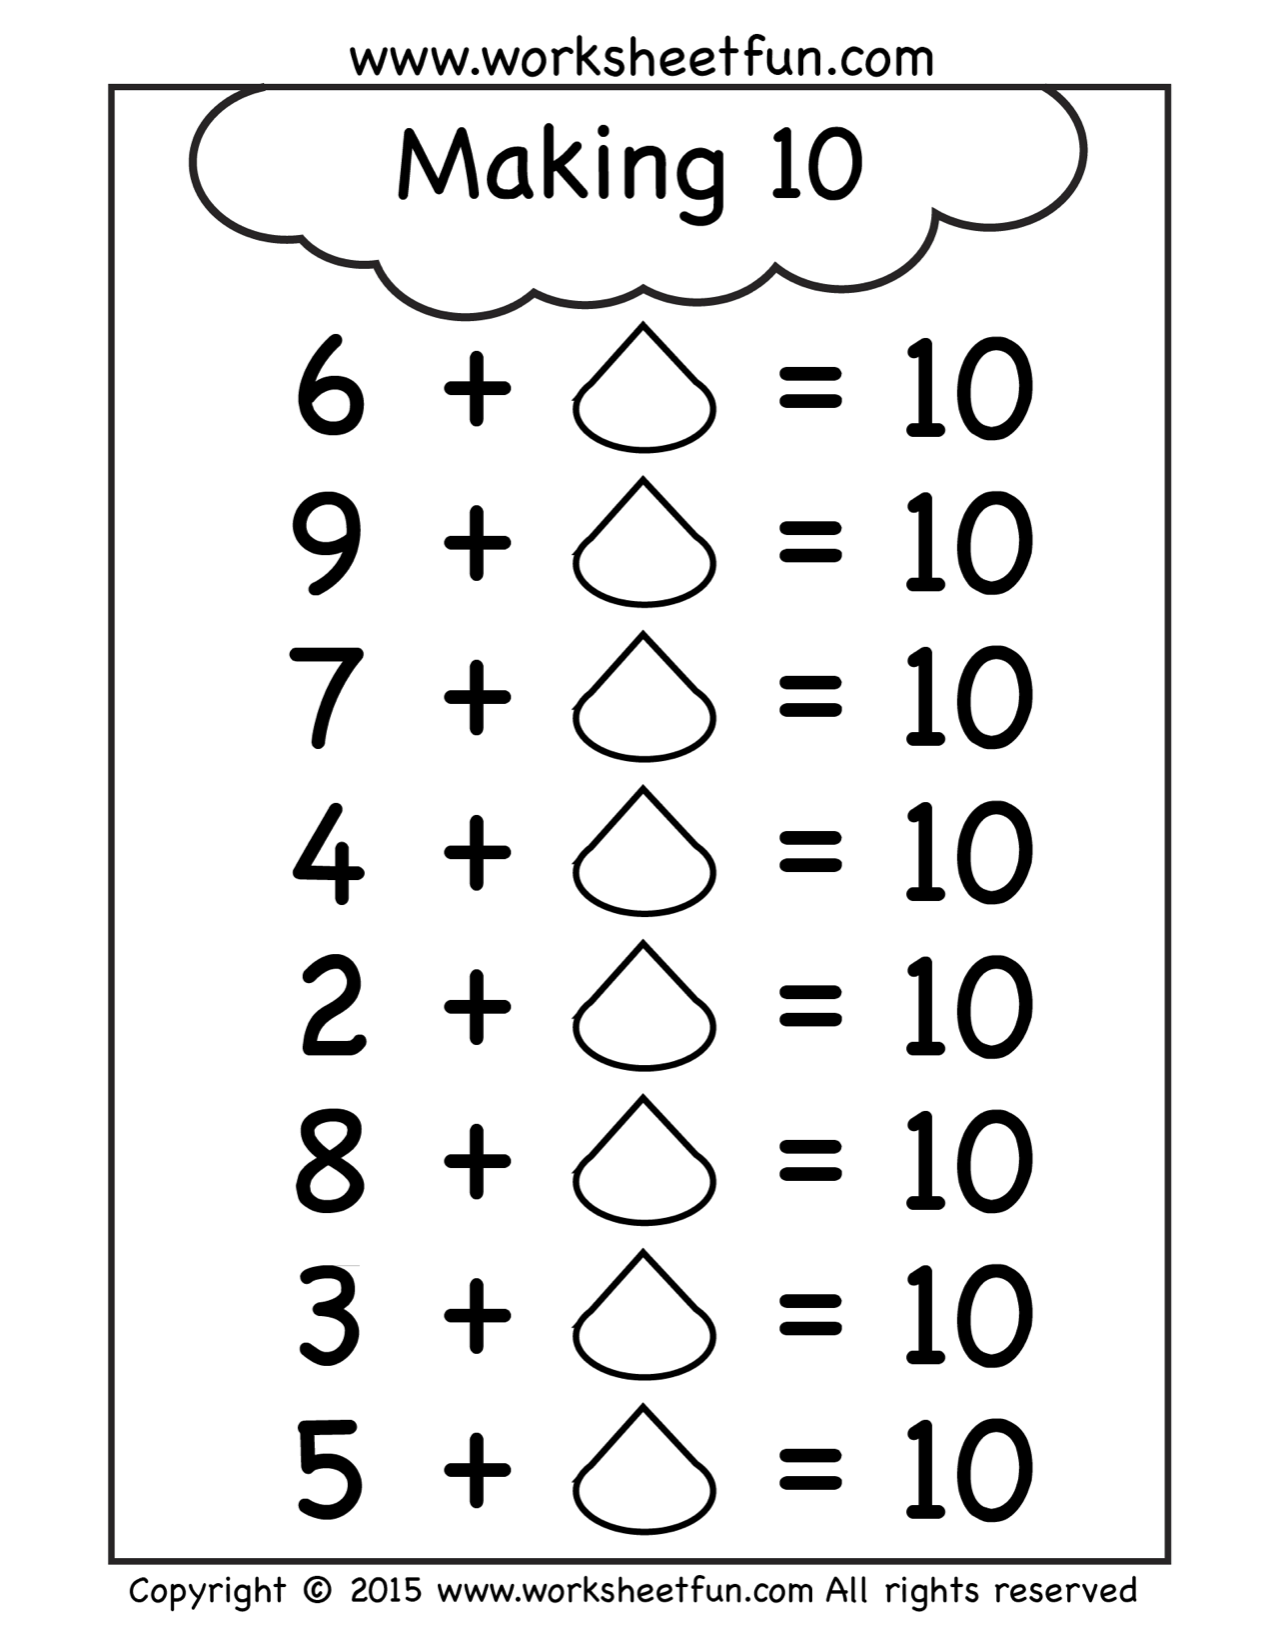 Free Making Ten Worksheet | Math | Pinterest | Worksheets, Maths and ...